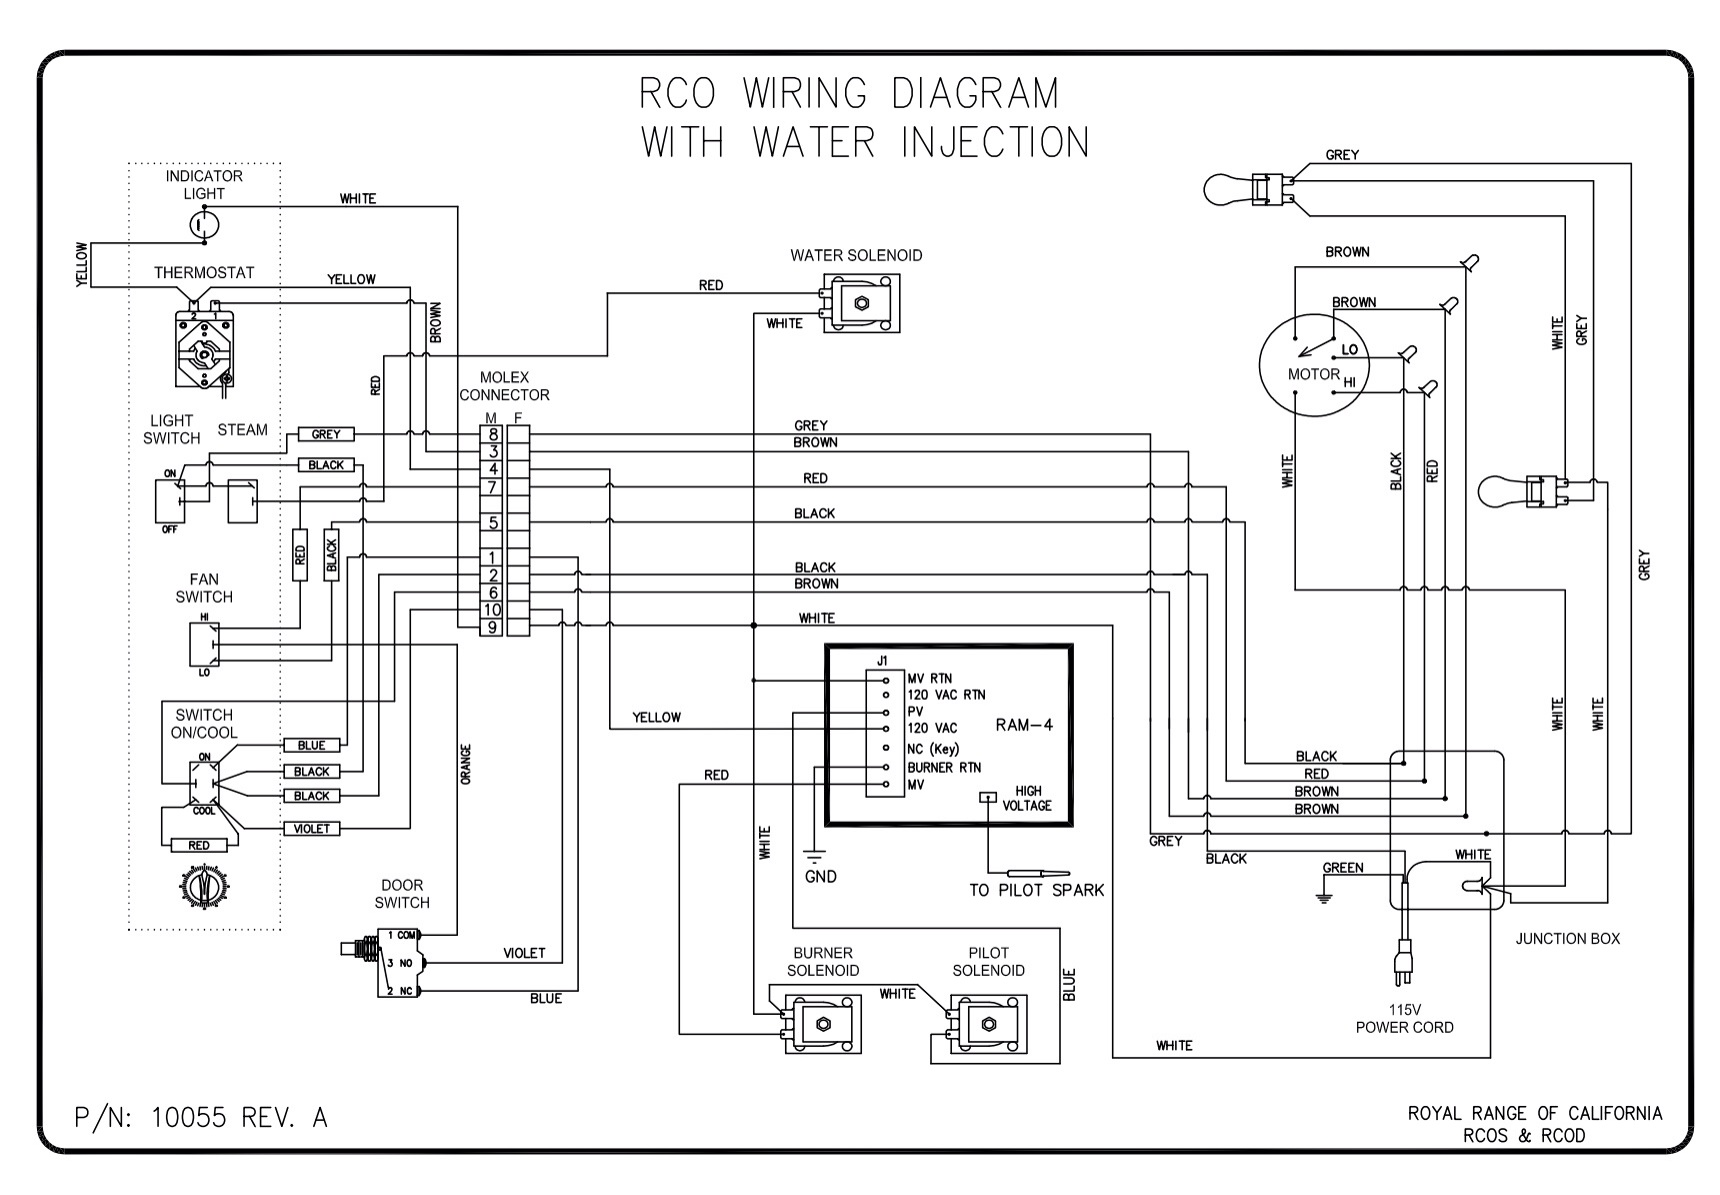 [DIAGRAM] 3 Wire Range Plug Wiring Diagram FULL Version HD